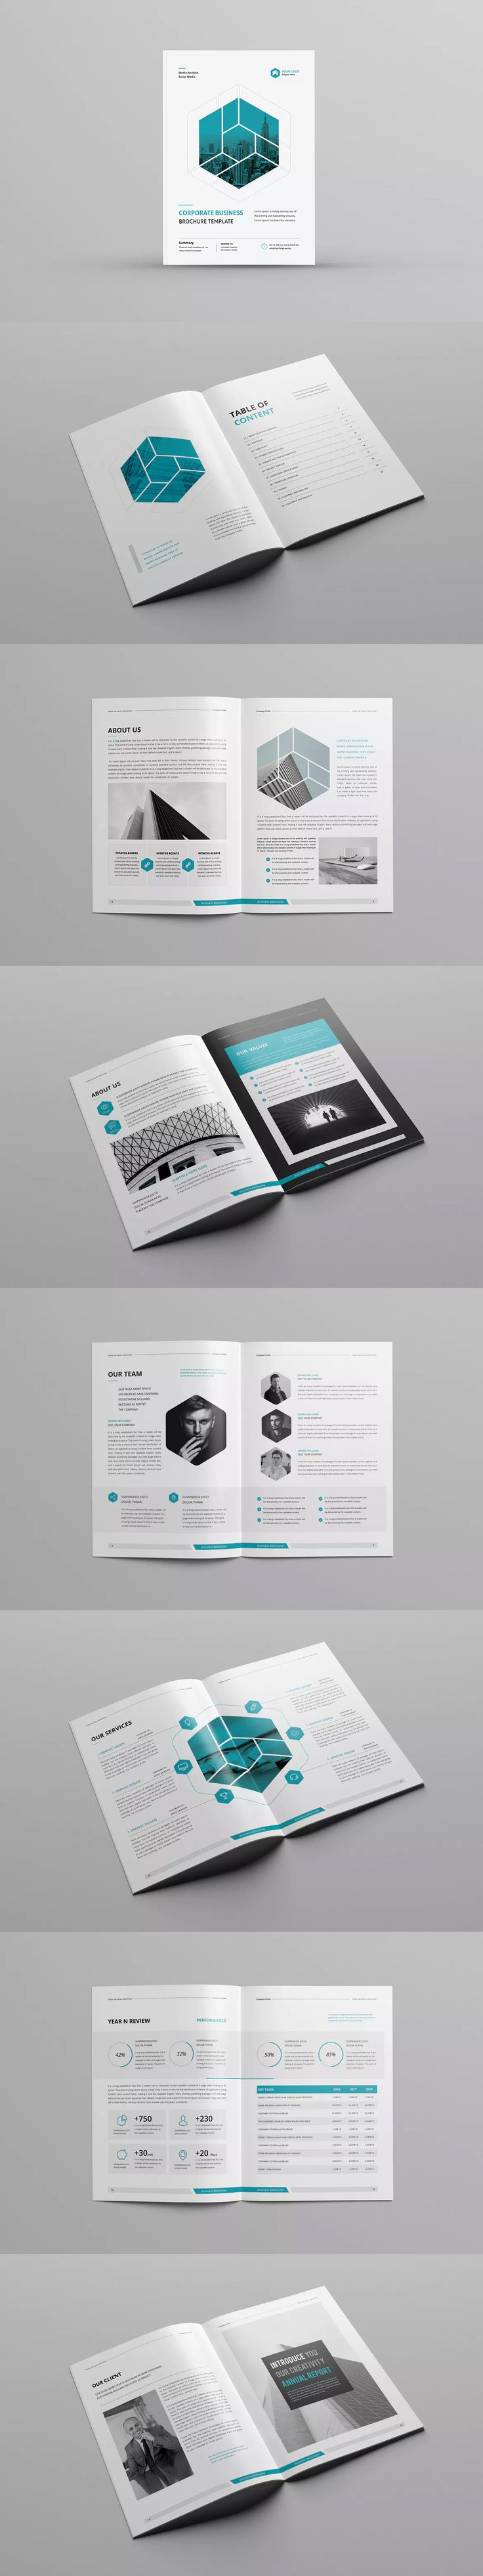 Company Profile Template InDesign INDD A4